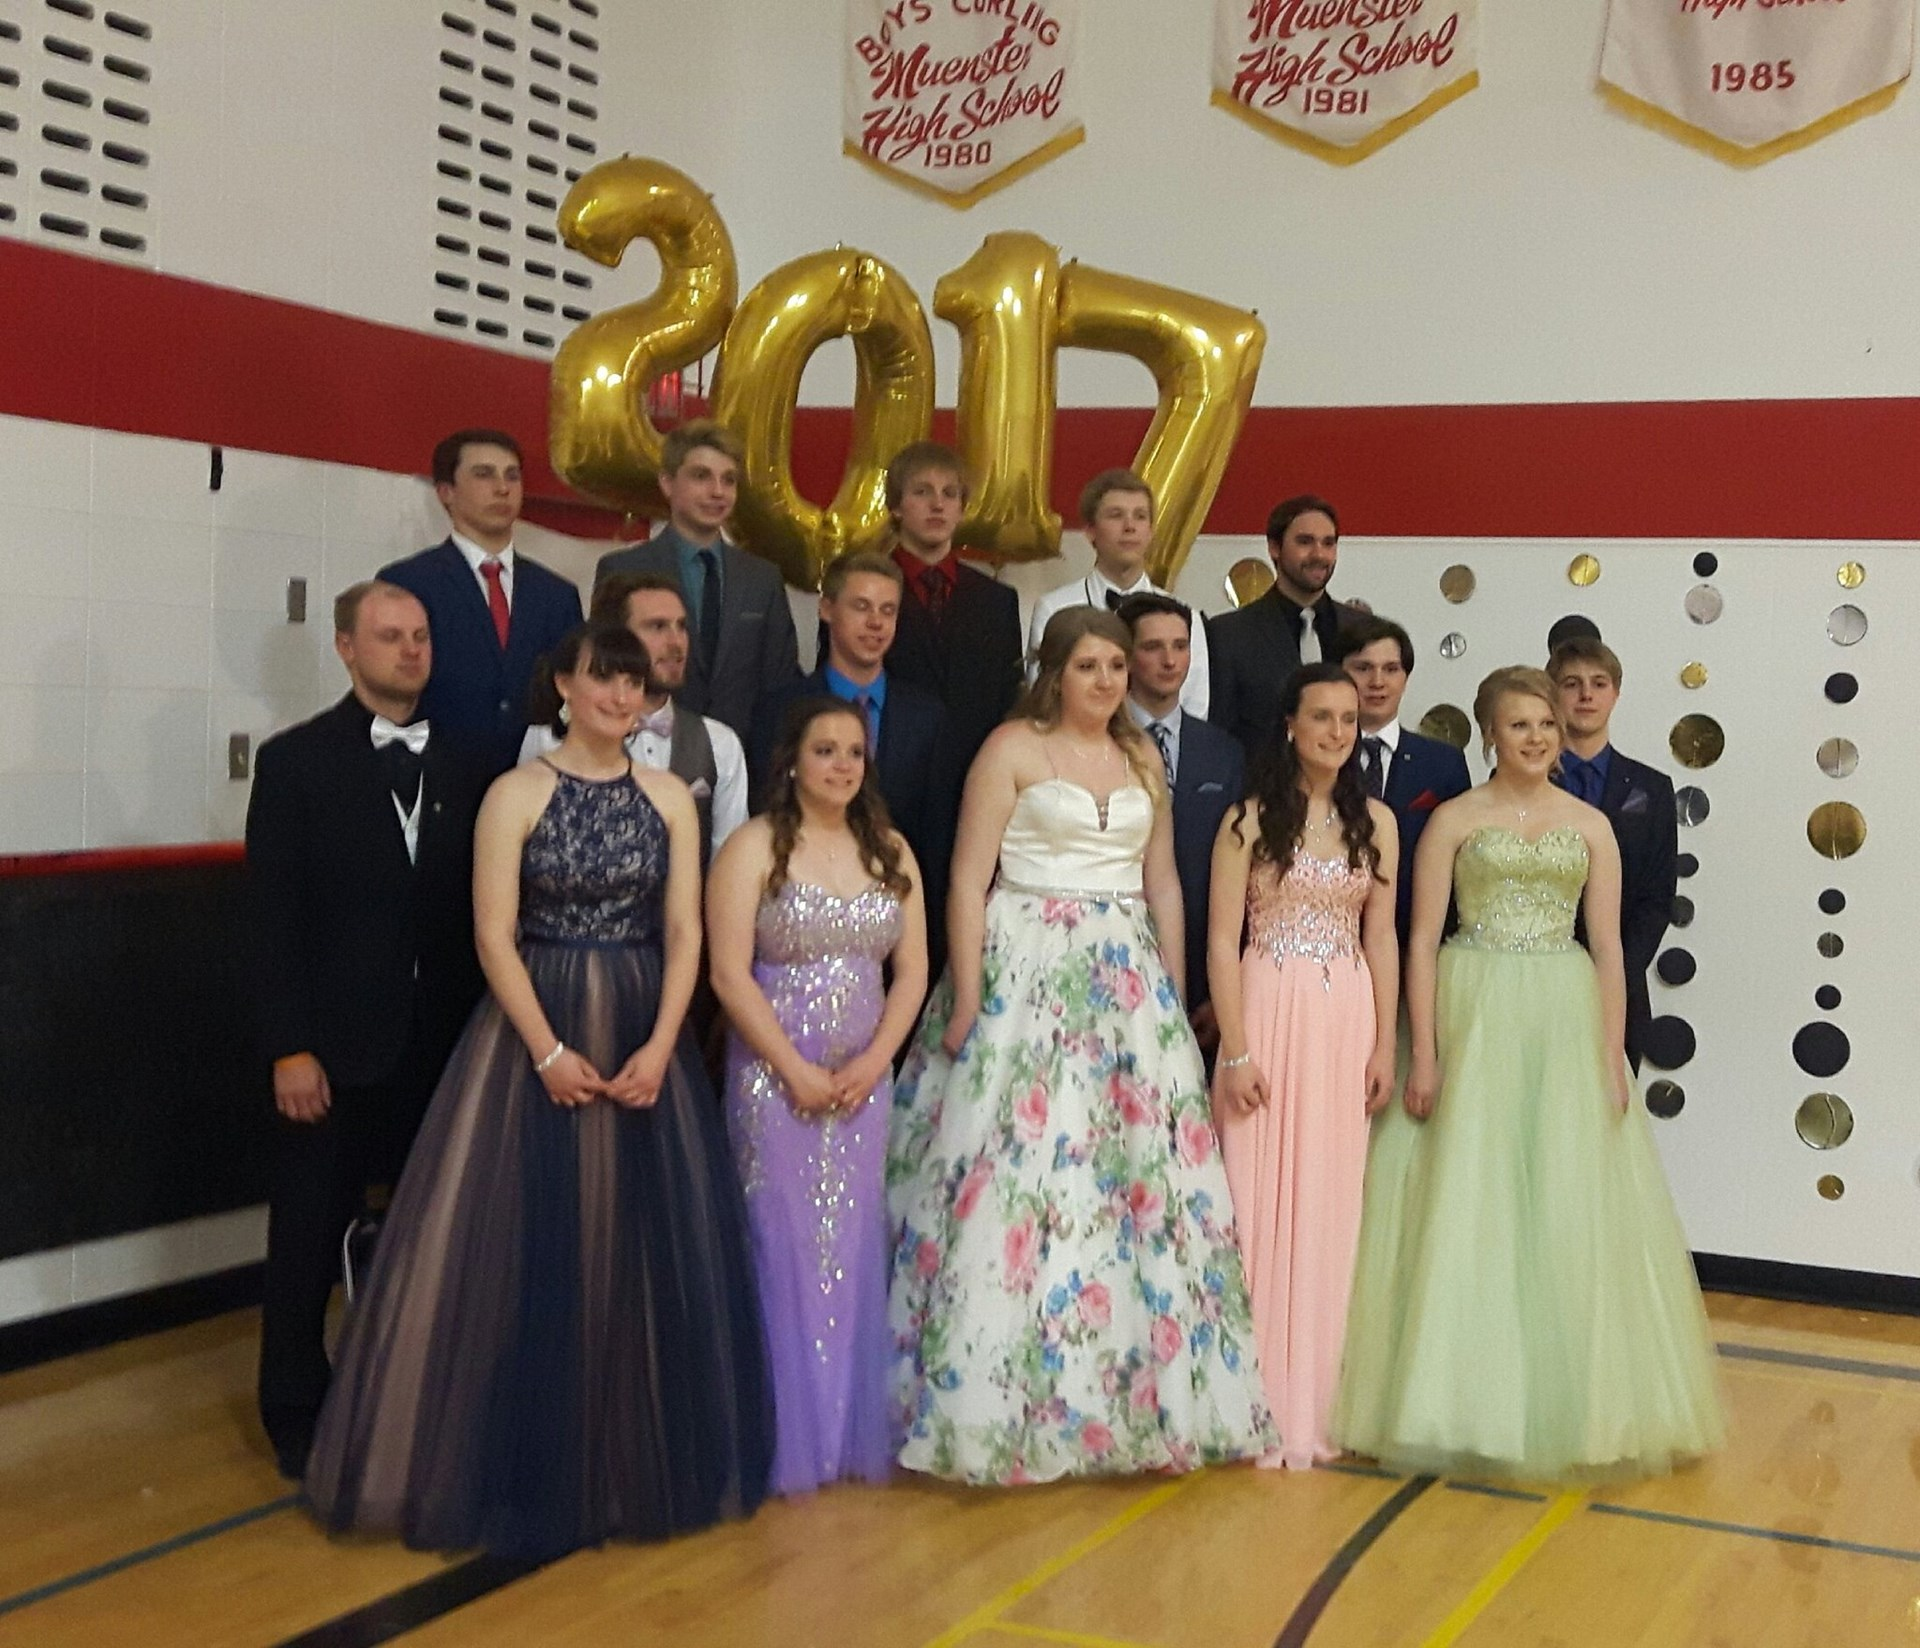 Muenster School Class of 17.jpg